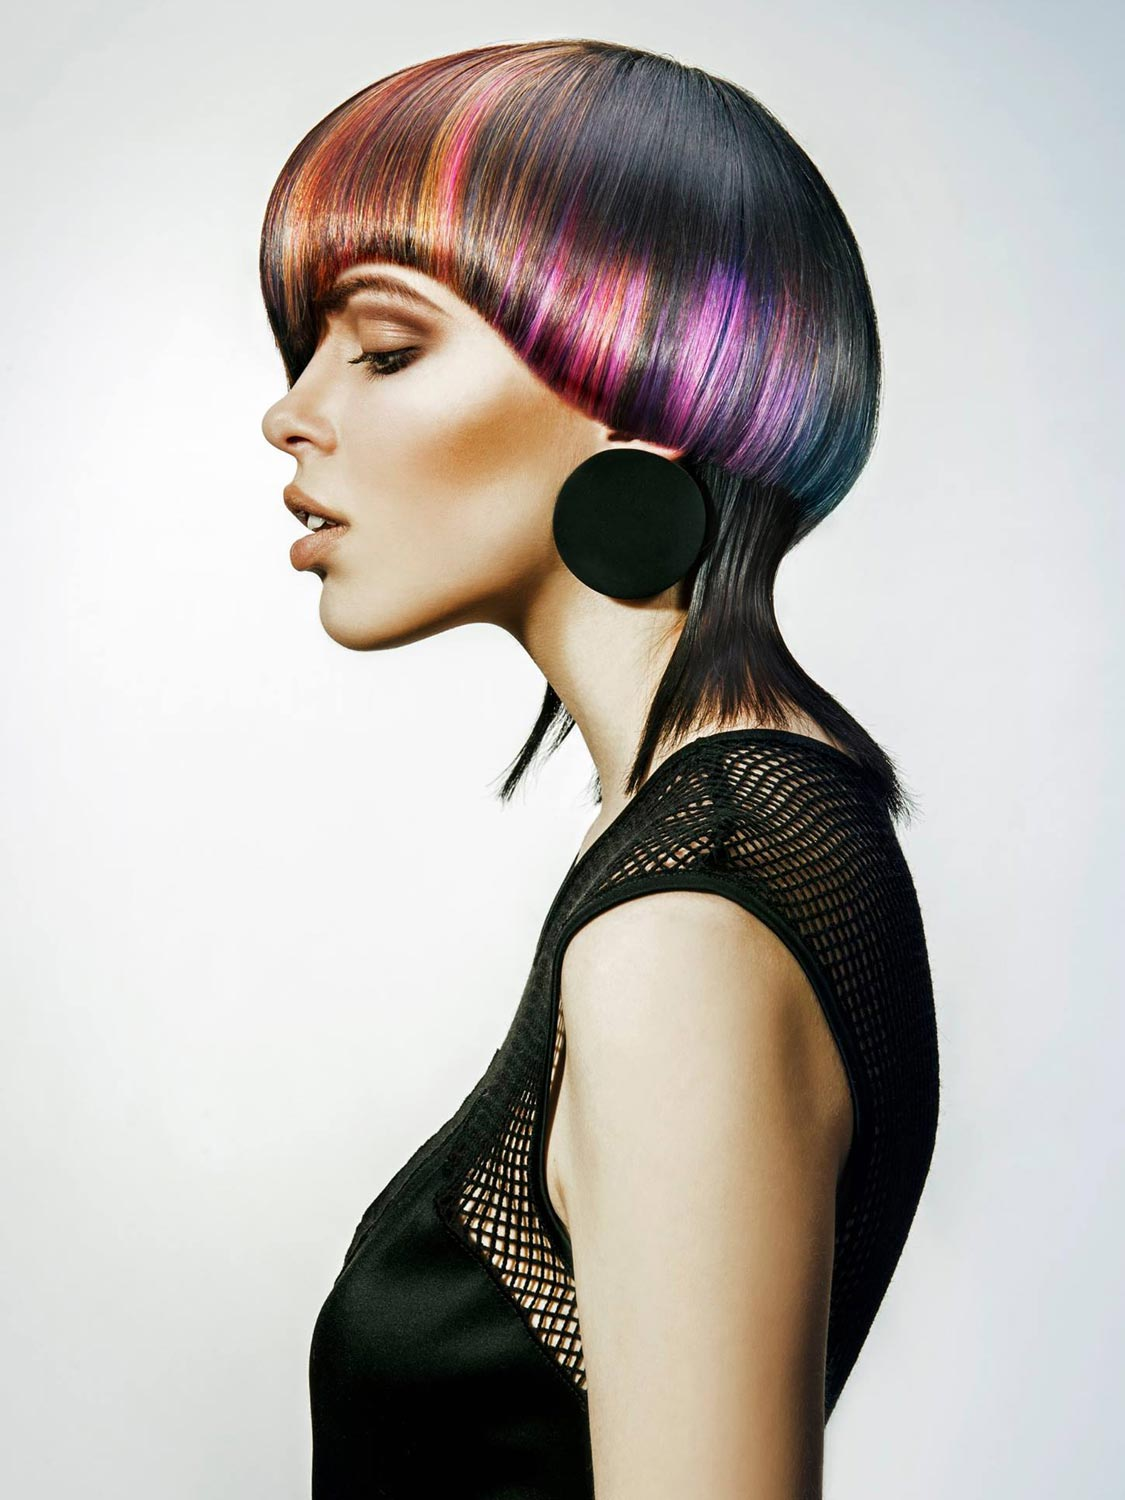 Lucie Jirkalová-Wenzlová, Salon FAME, Praha – nominace v soutěžní kategorii Color Zoom Collection 2015 GLOBAL CREATIVE COLORIST.